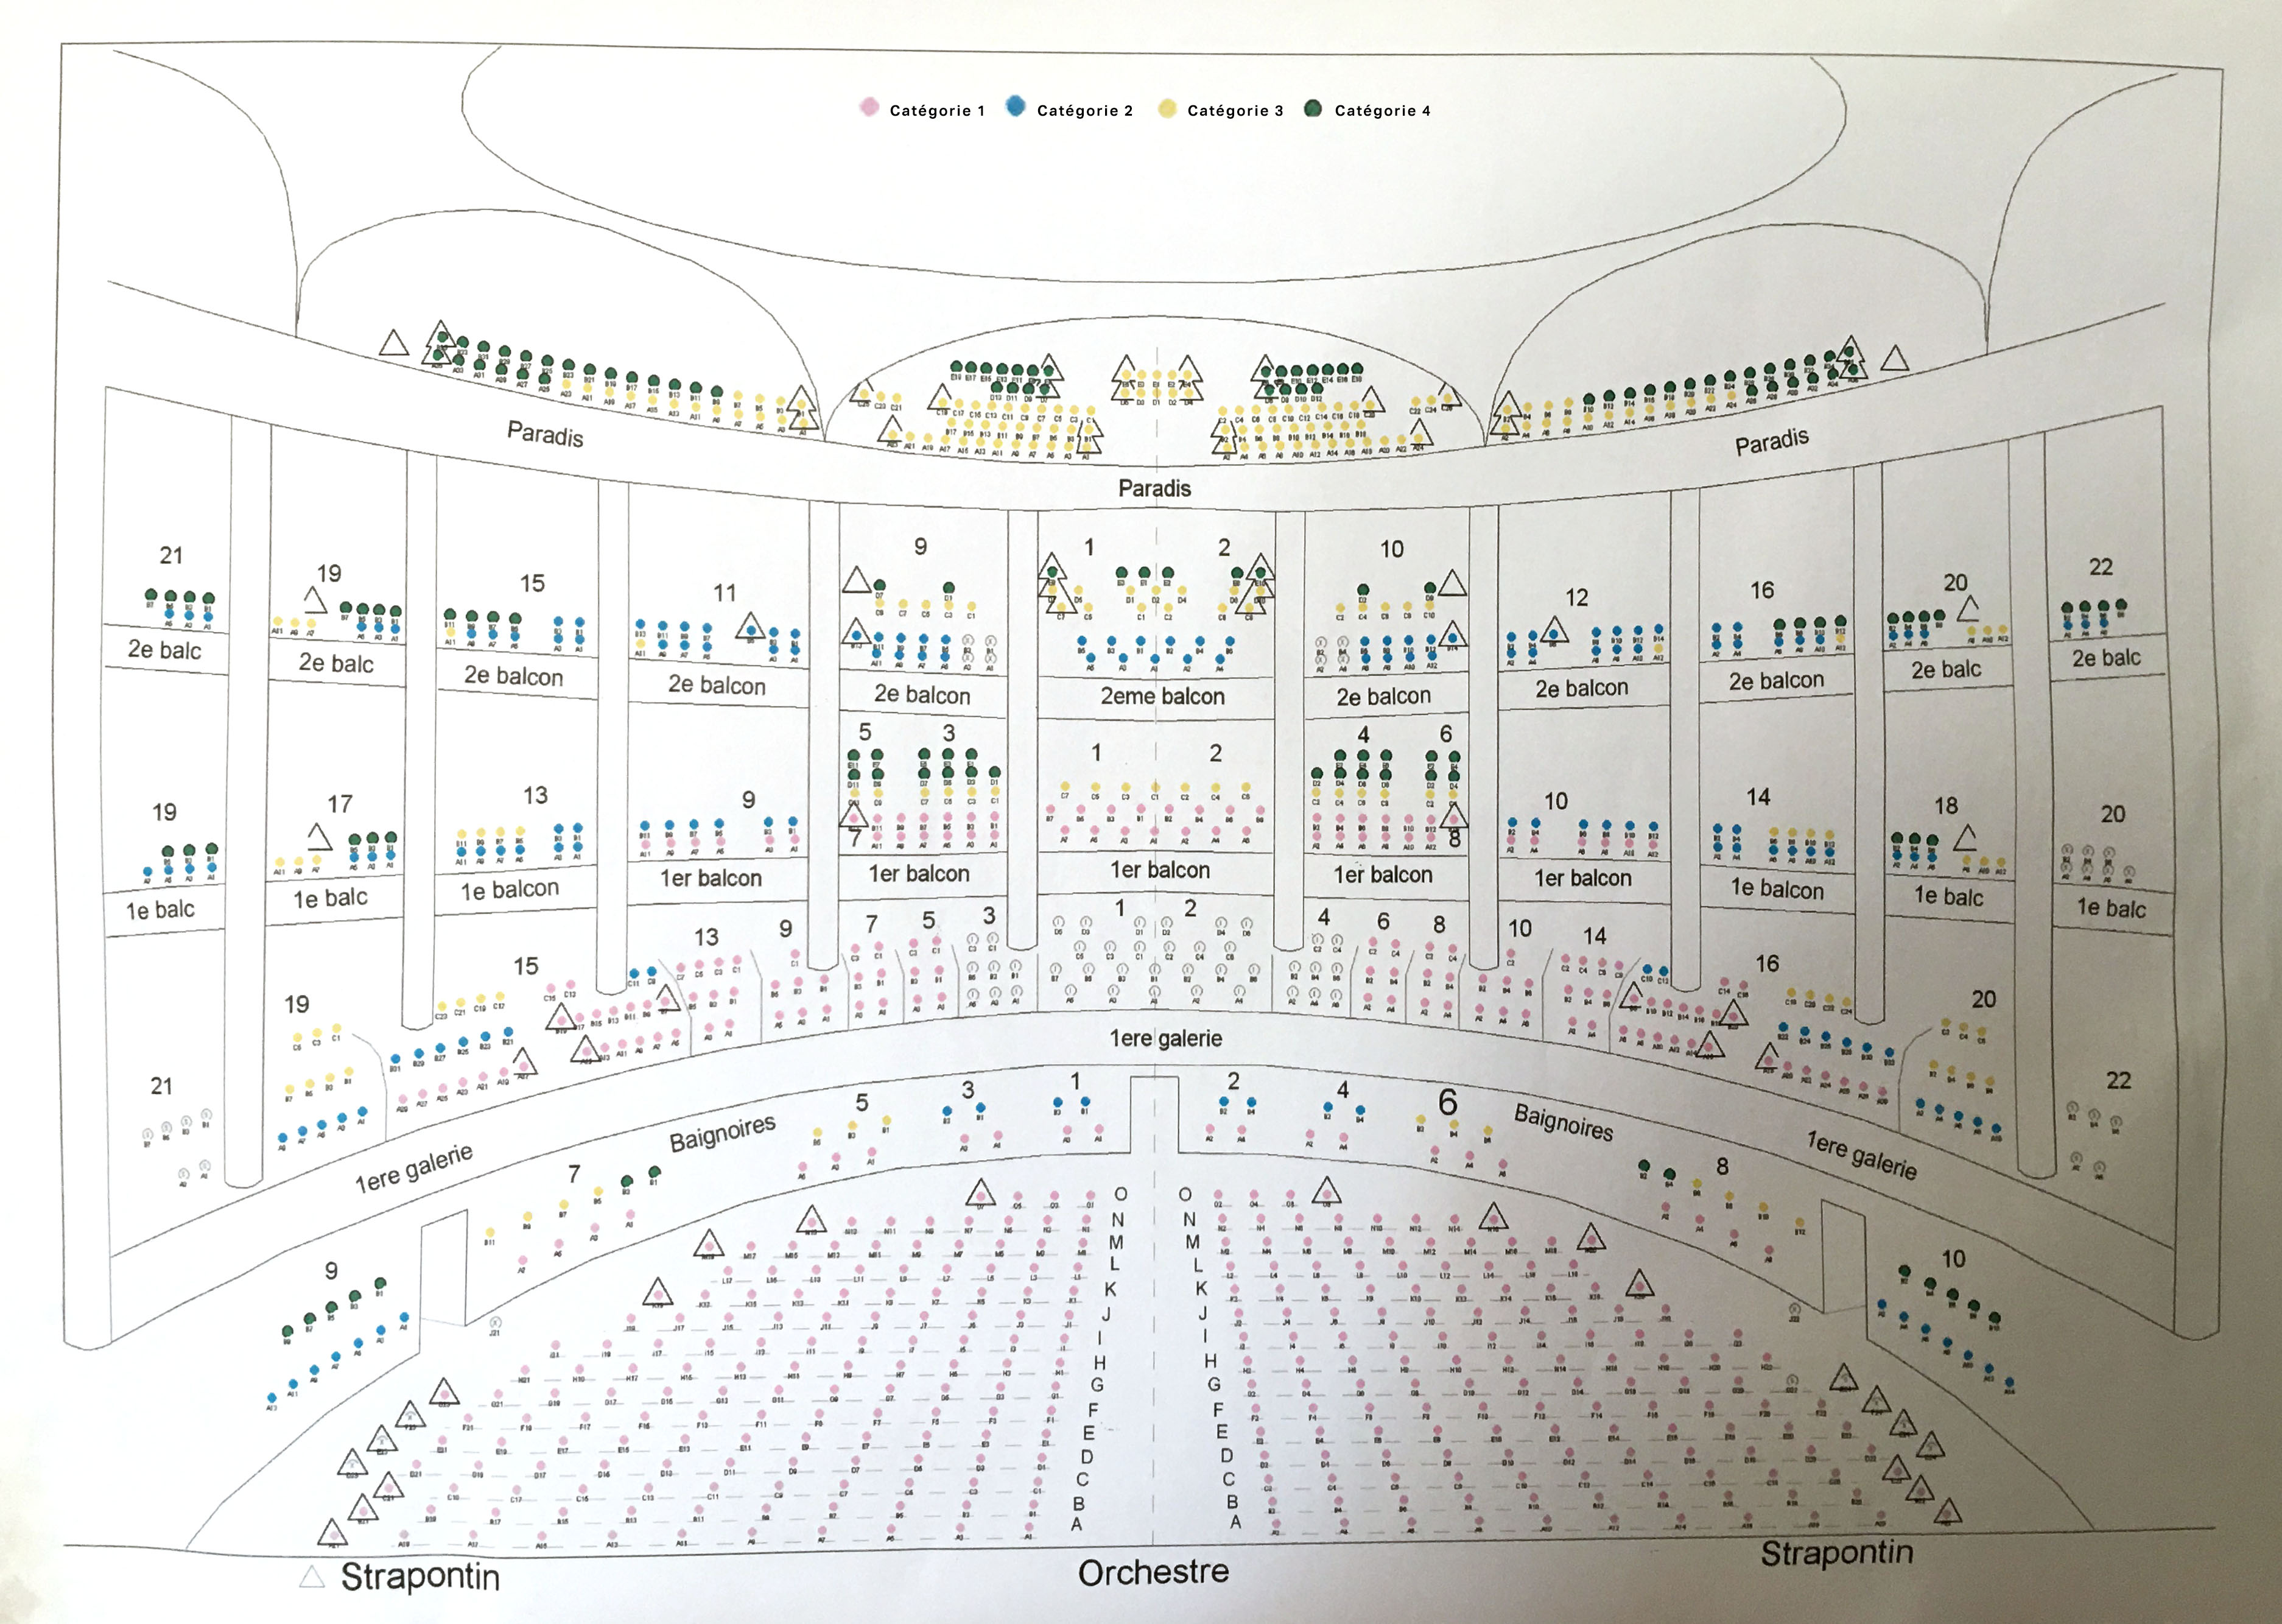 Plans De Salle Opera National De Bordeaux